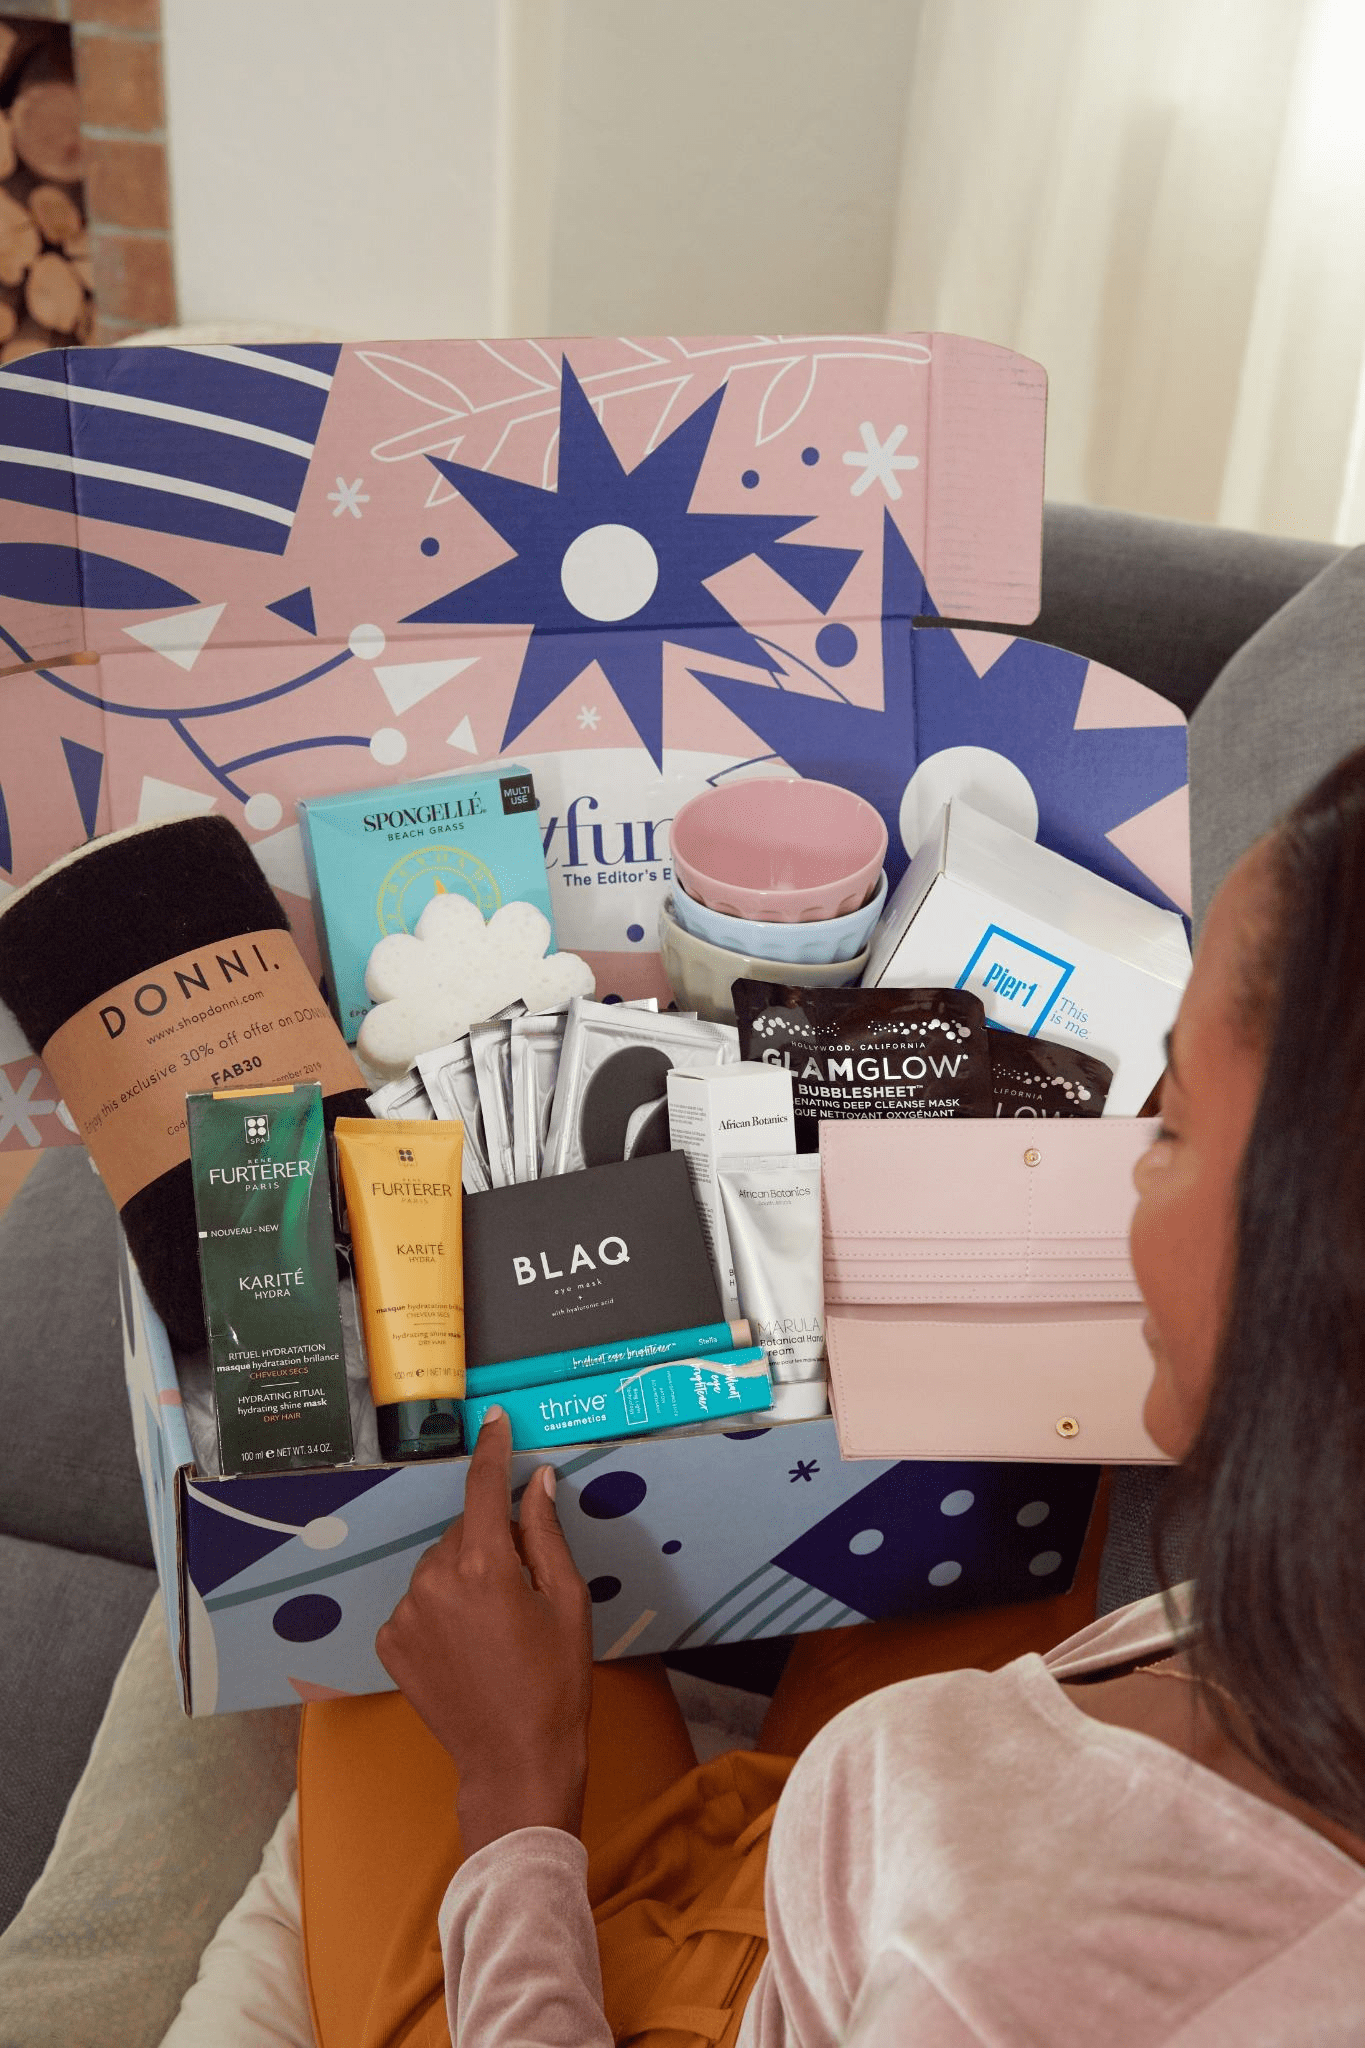 FabFitFun Box Flash Sale: Save 40% on the Winter Editor's Box! LAST DAY!